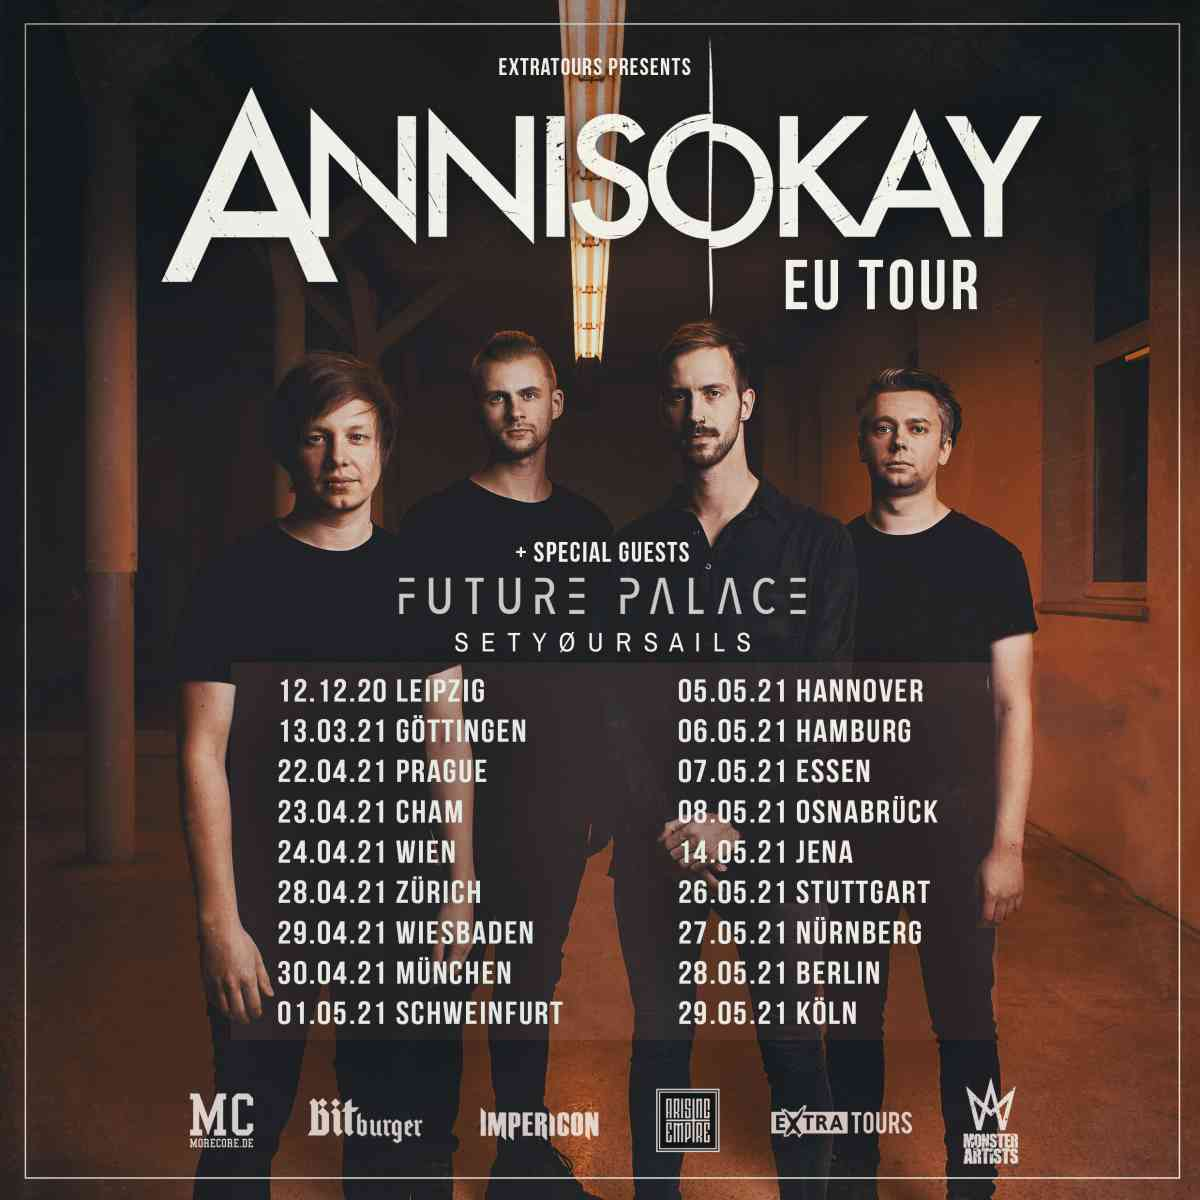 annisokay - eu tour flyer 2021